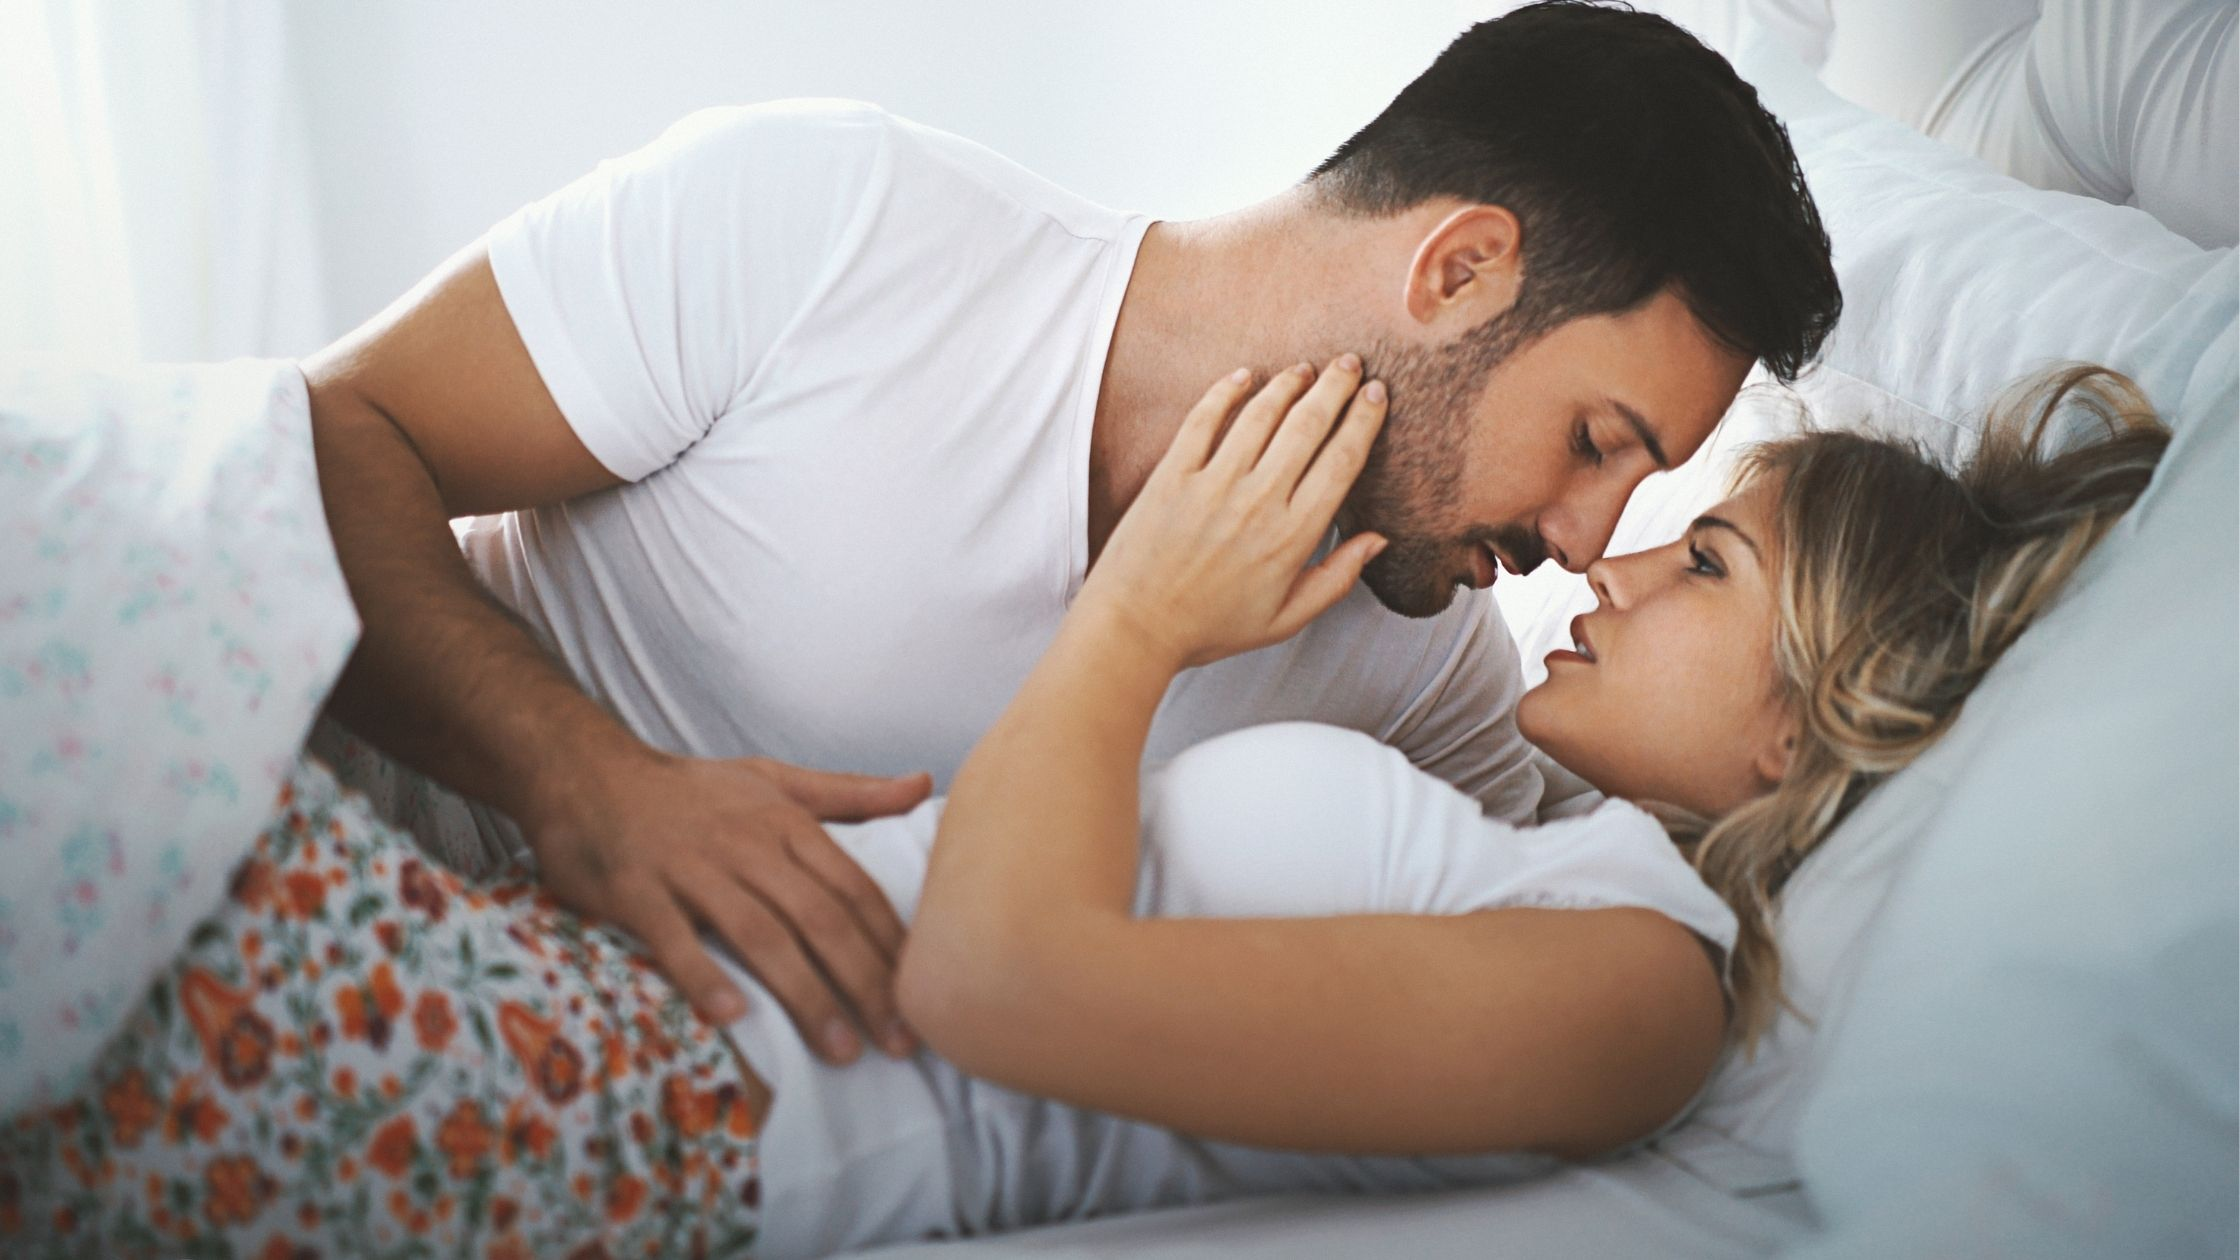 What to do when it hurts while having sex